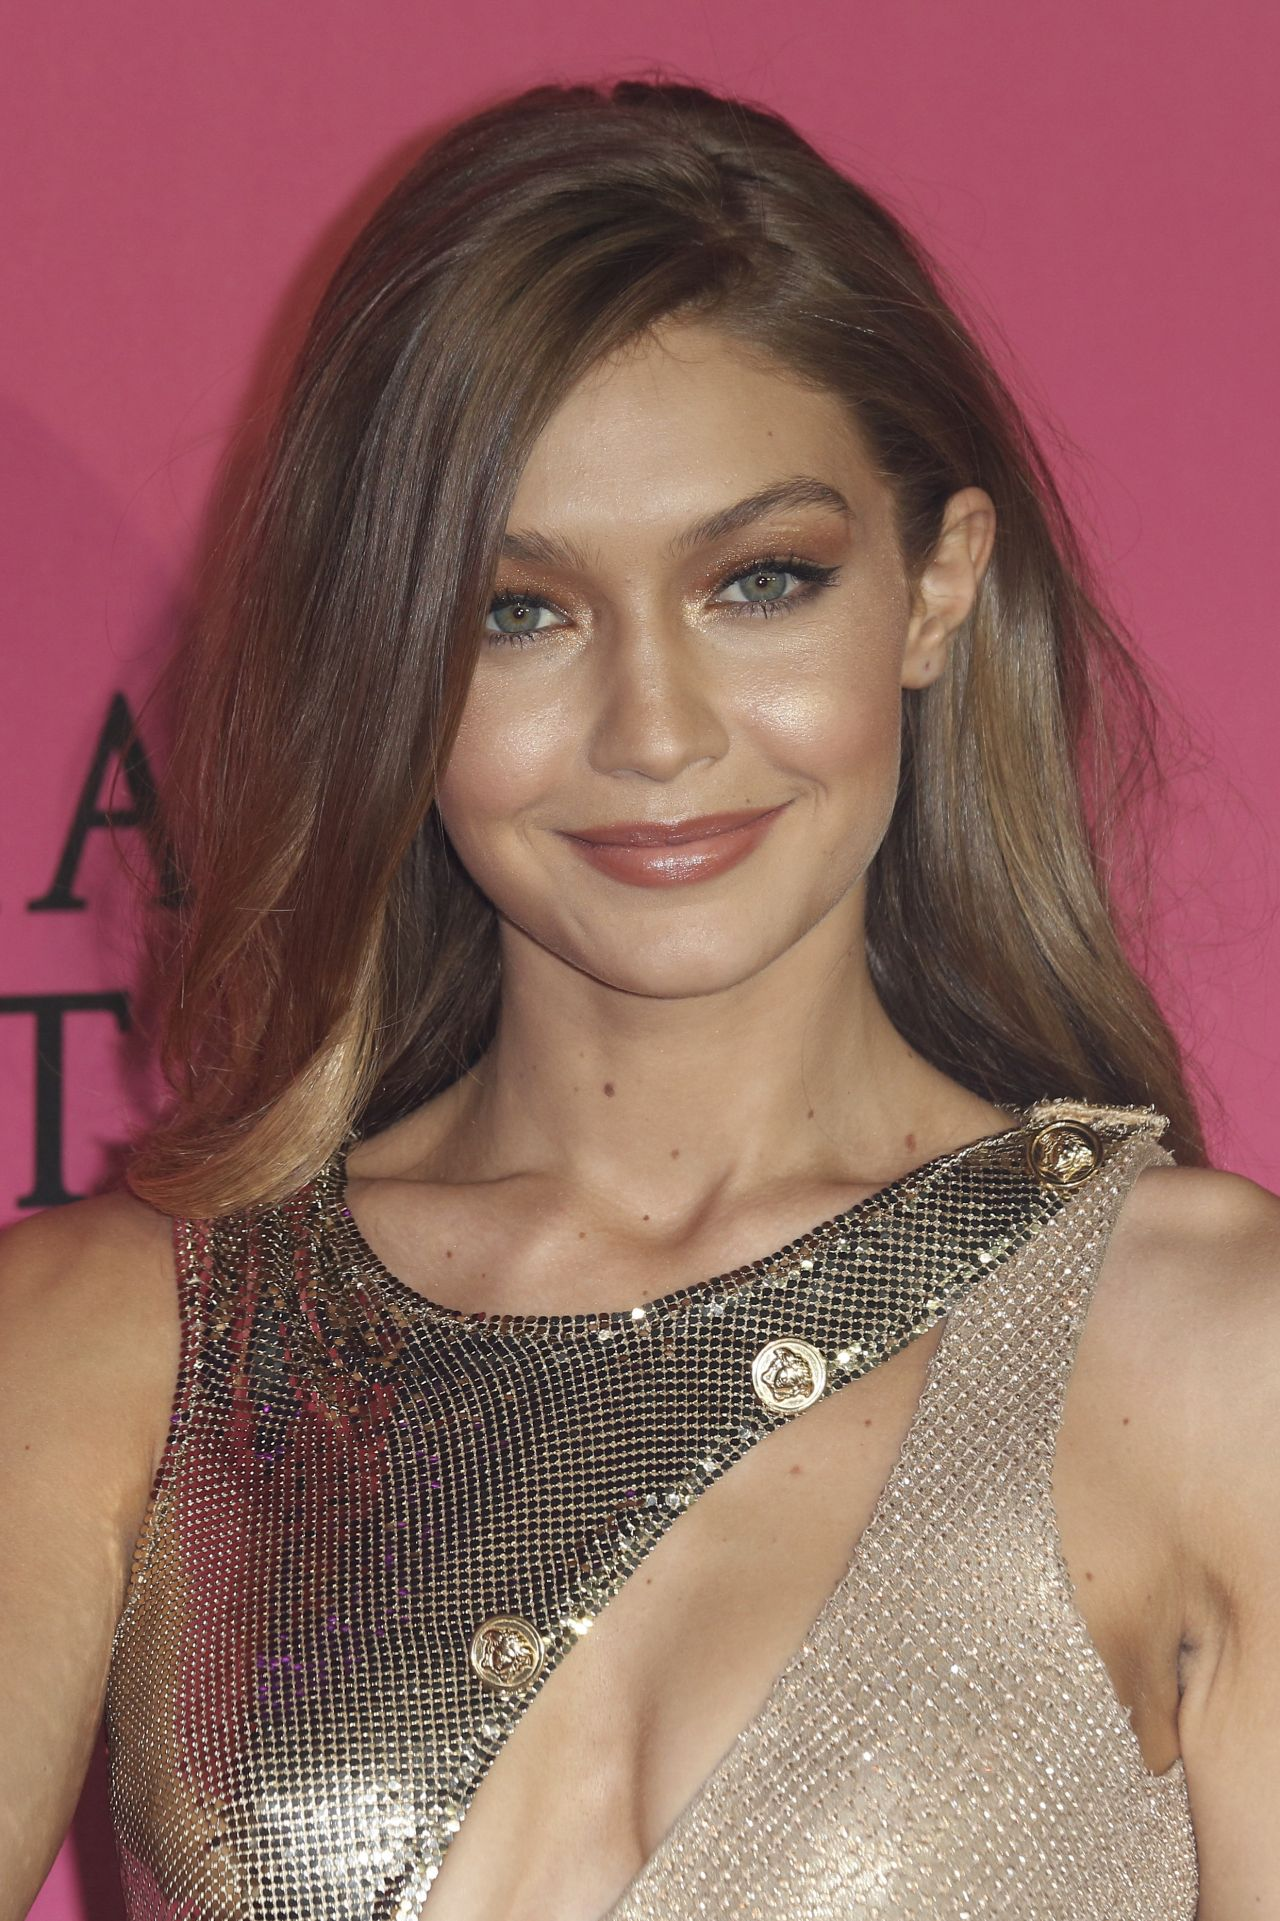 Gigi Hadid Best Beauty Trends: Victoria's Secret Fashion Show 2016 After